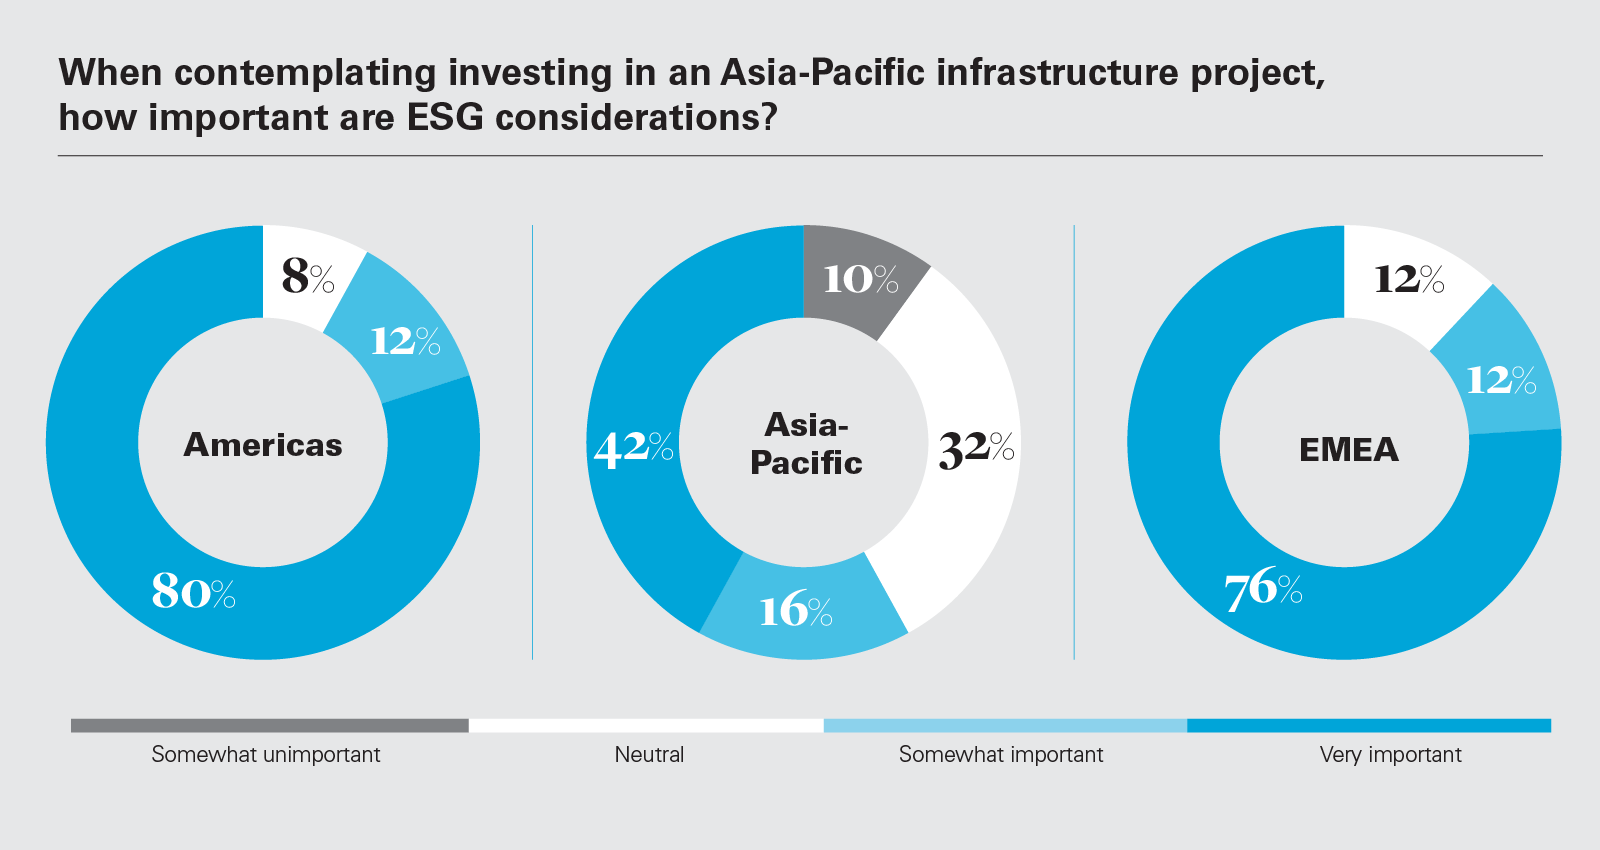 When contemplating investing in an Asia-Pacific infrastructure project, how important are ESG considerations?